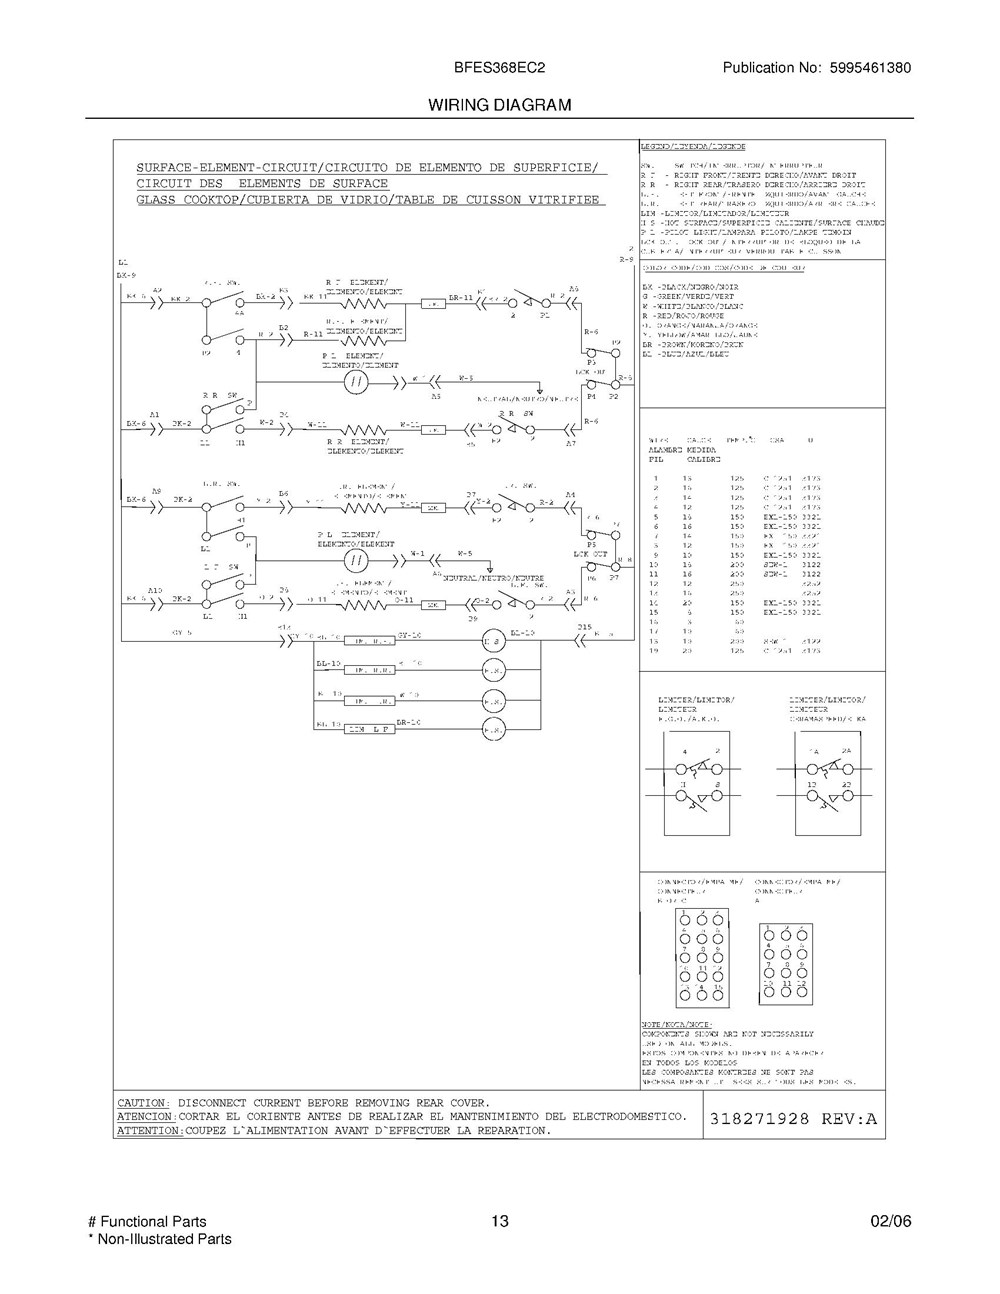 Bfes368ec2 Frigidaire Company Appliance Parts Backguard 05body 07top Drawer 09door 01cover 10wiring Diagram